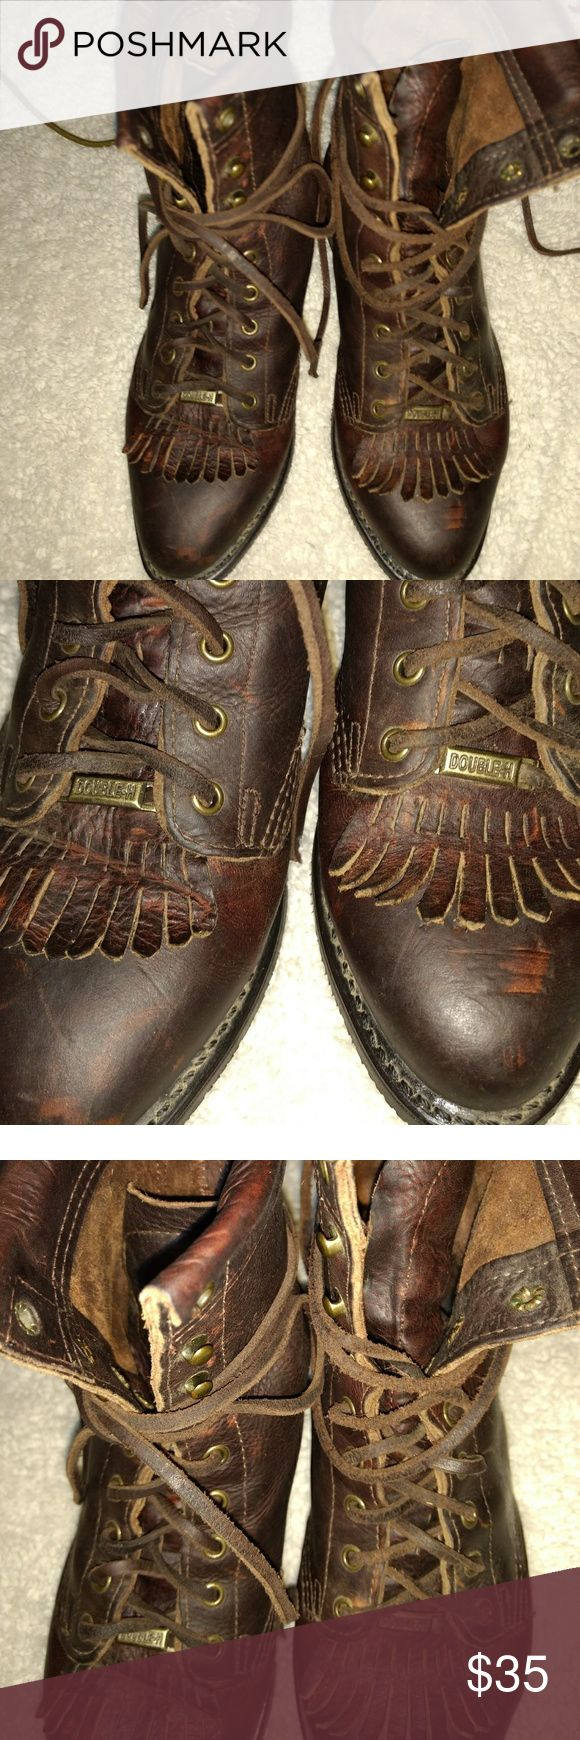 Georgia boots Typically a Western riding boot. The tassel part can be removed and worn as similar combat boot look half eye and have lace up. They have the worn look and haven't been worn but a hand full of times. All leather. Hardy boot! dark brown Georgia Boot Shoes Lace Up Boots